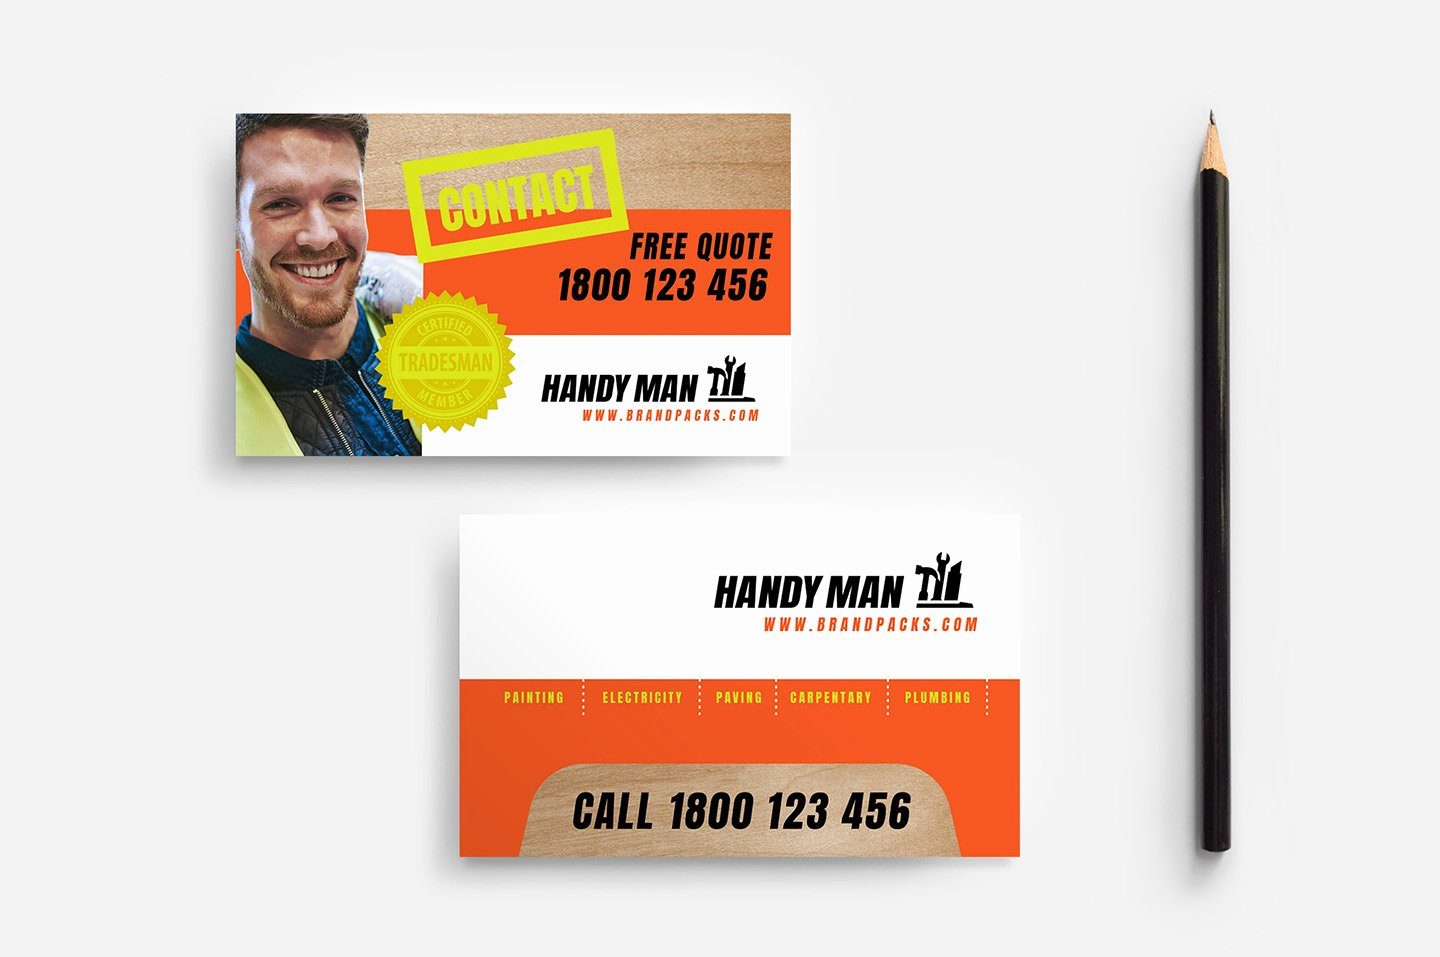 Handyman Business Cards Templates Free Inspirational Handyman Business Card Template V2 In Psd Ai & Vector Brandpacks